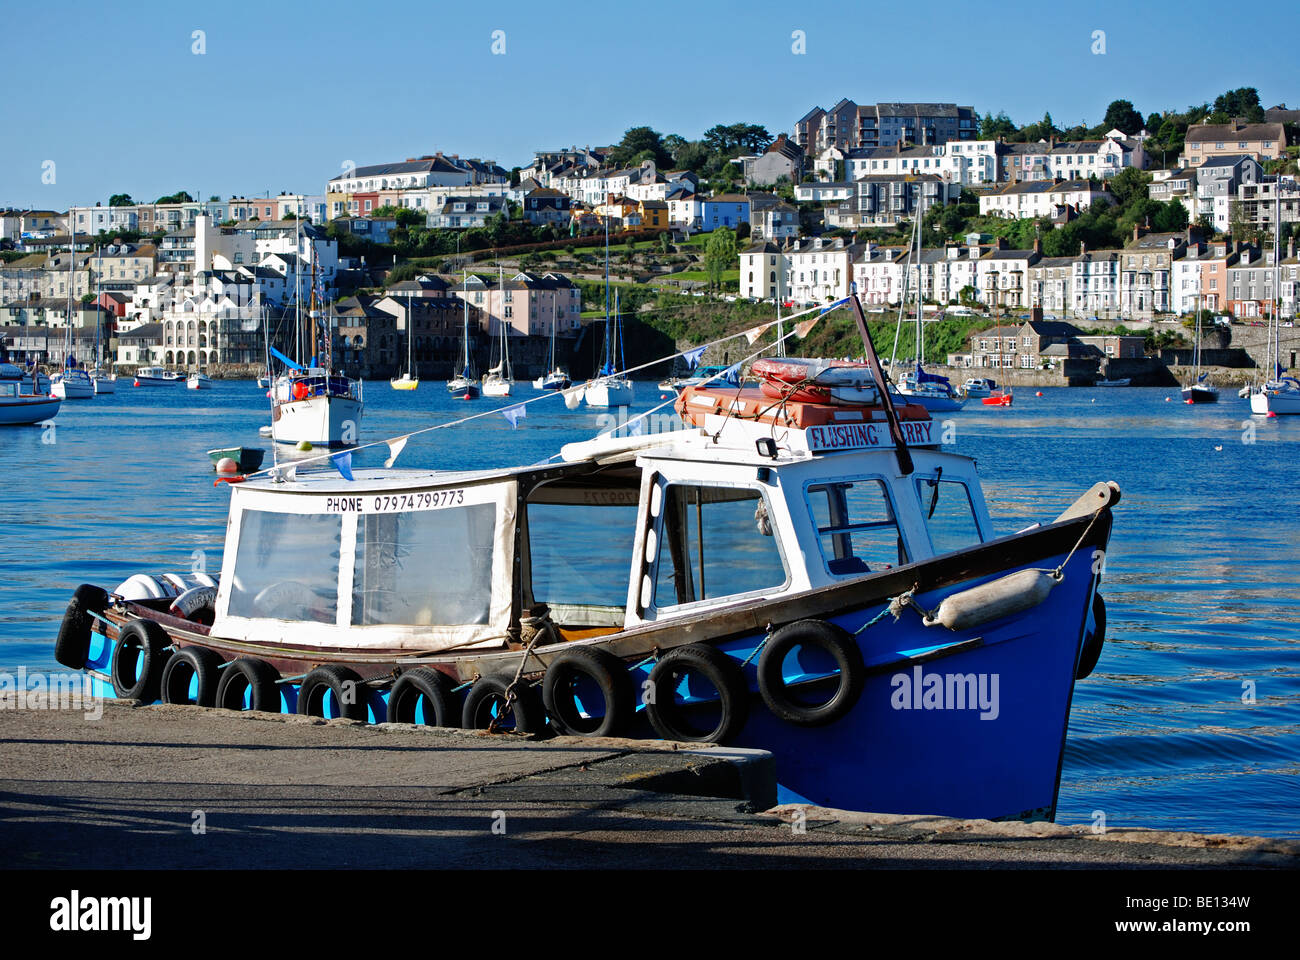 the ' flushing to falmouth ' ferry waits at the quay in flushing,cornwall,uk - Stock Image